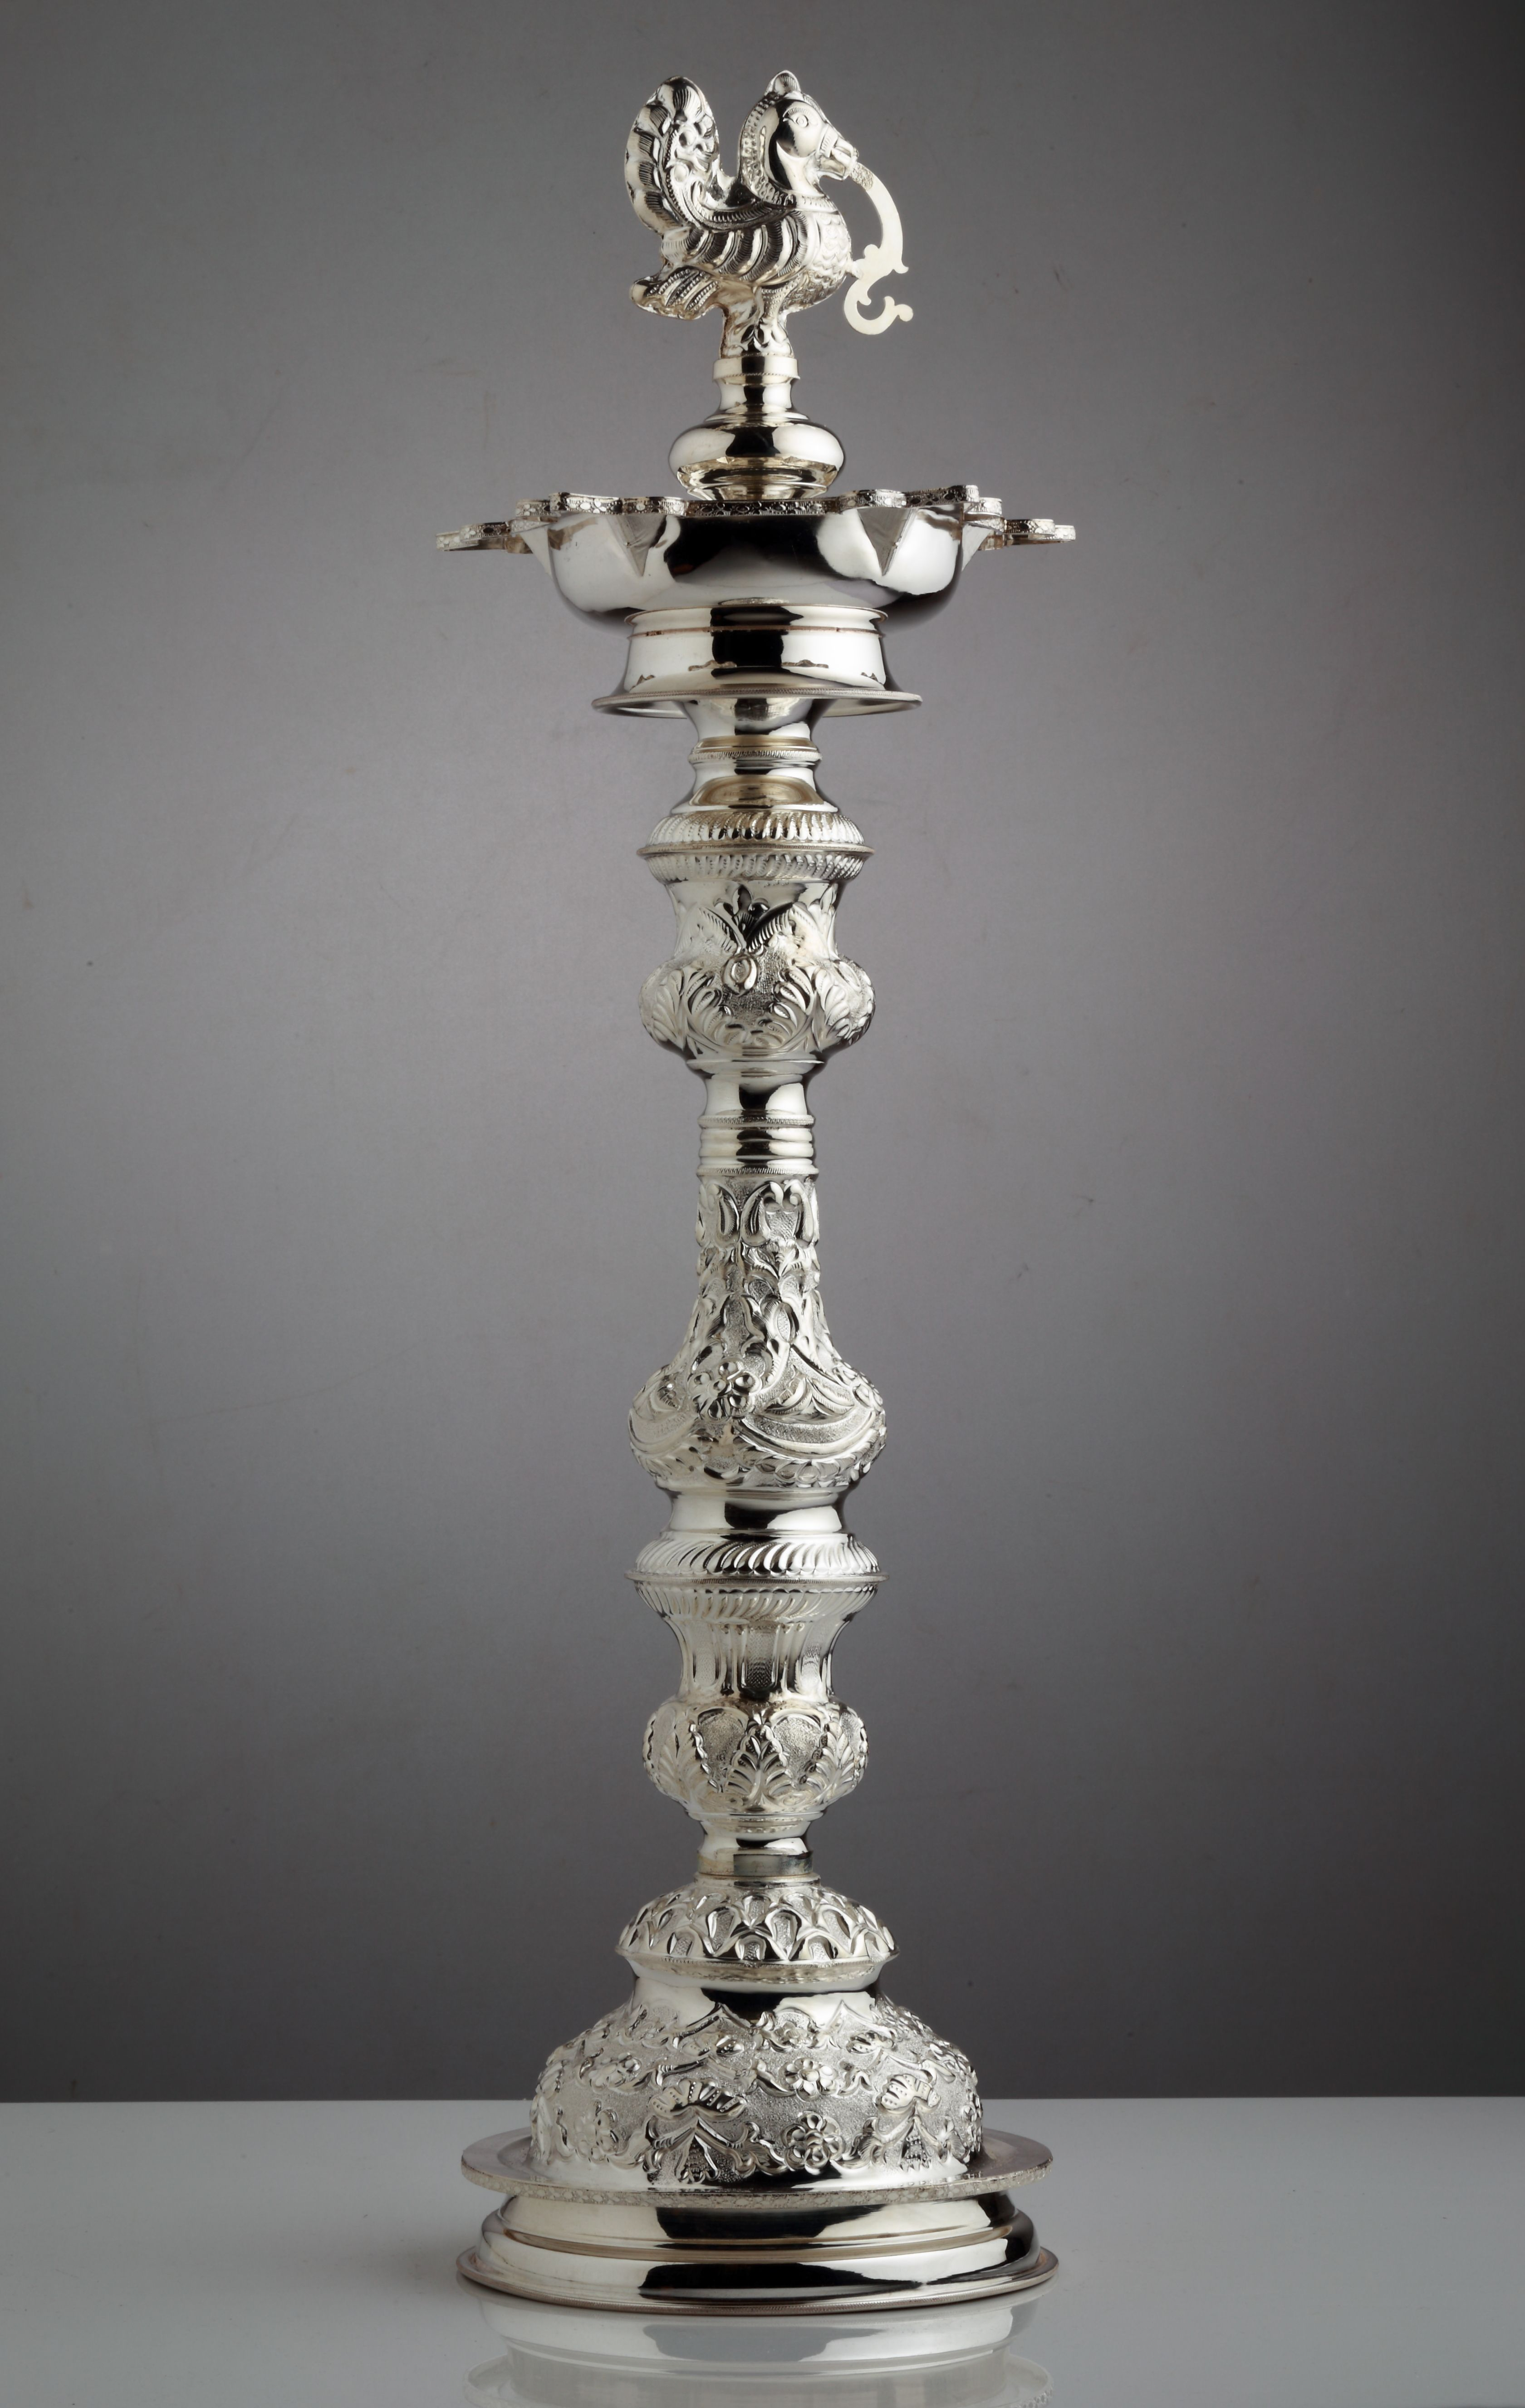 A Skillfully Crafted Silver Lamp Every Cloud Has A Silver Lining Pinterest Silver Lamp